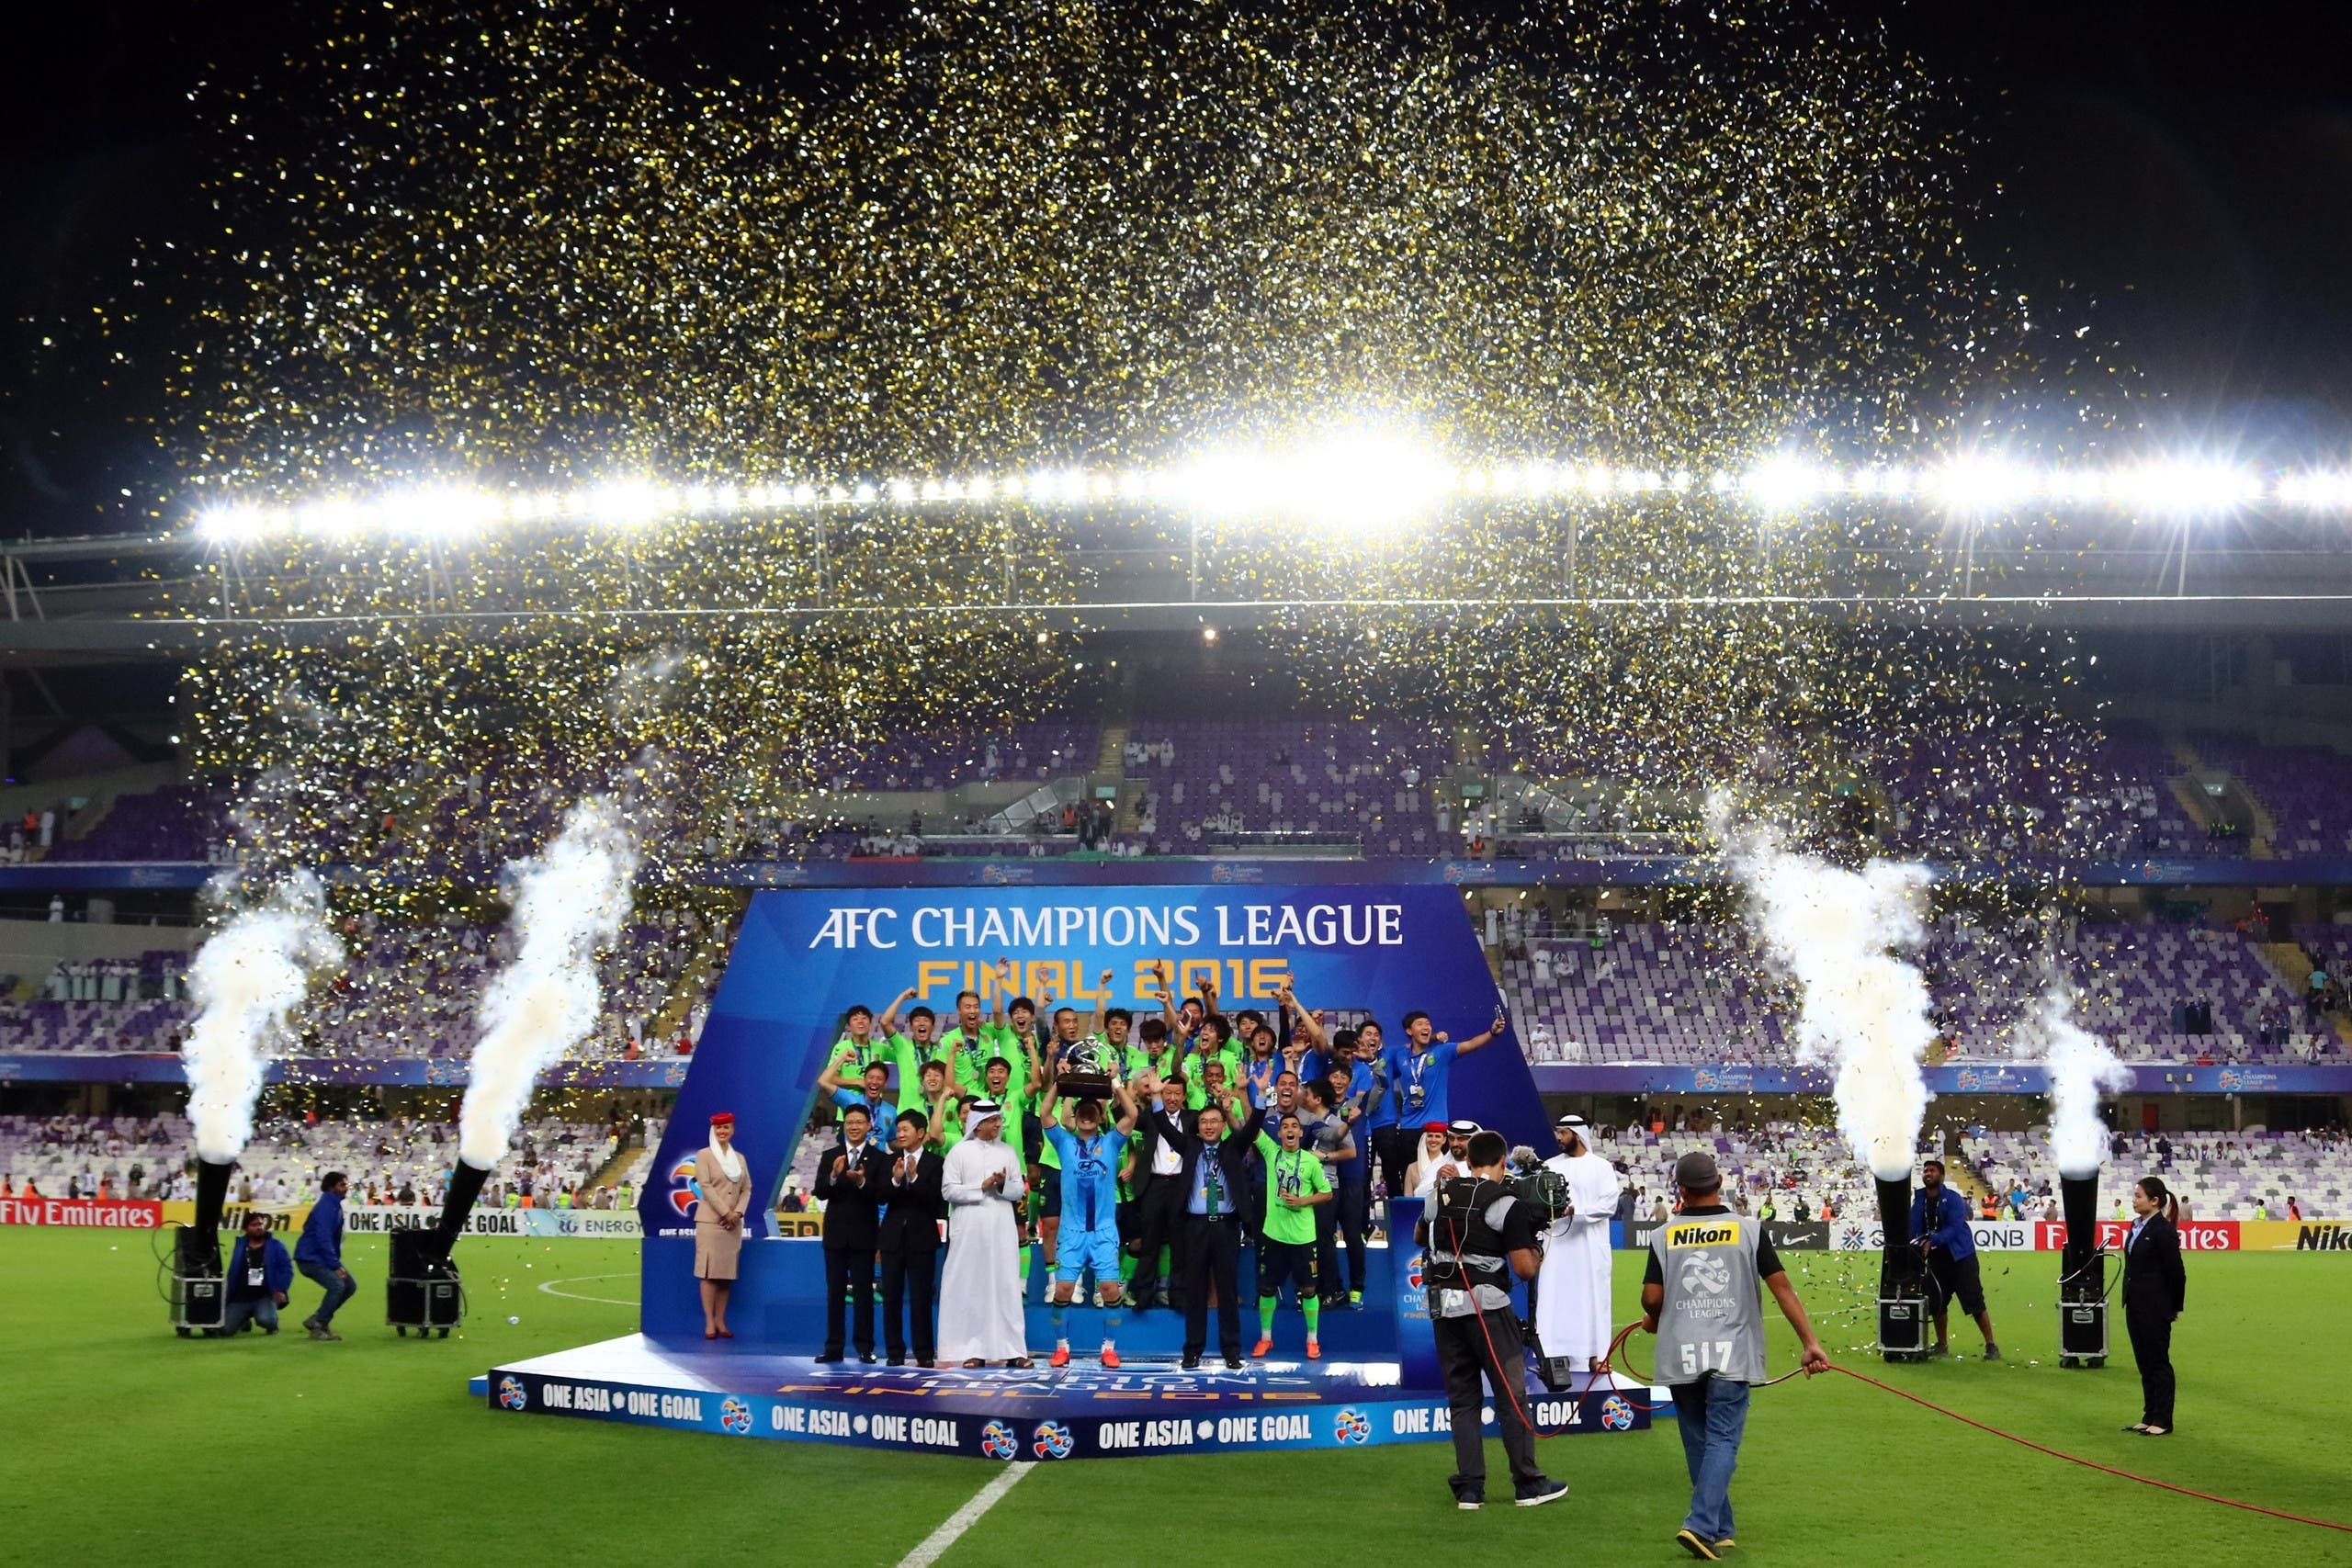 Jeonbuk players celebrate as they are crowned champions following their AFC Champions League final between UAE's Al-Ain and South Korea's Jeonbuk Hyundai Motors at the Hazza bin Zayed Stadium in Al-Ain on November 26, 2016. (AFP)